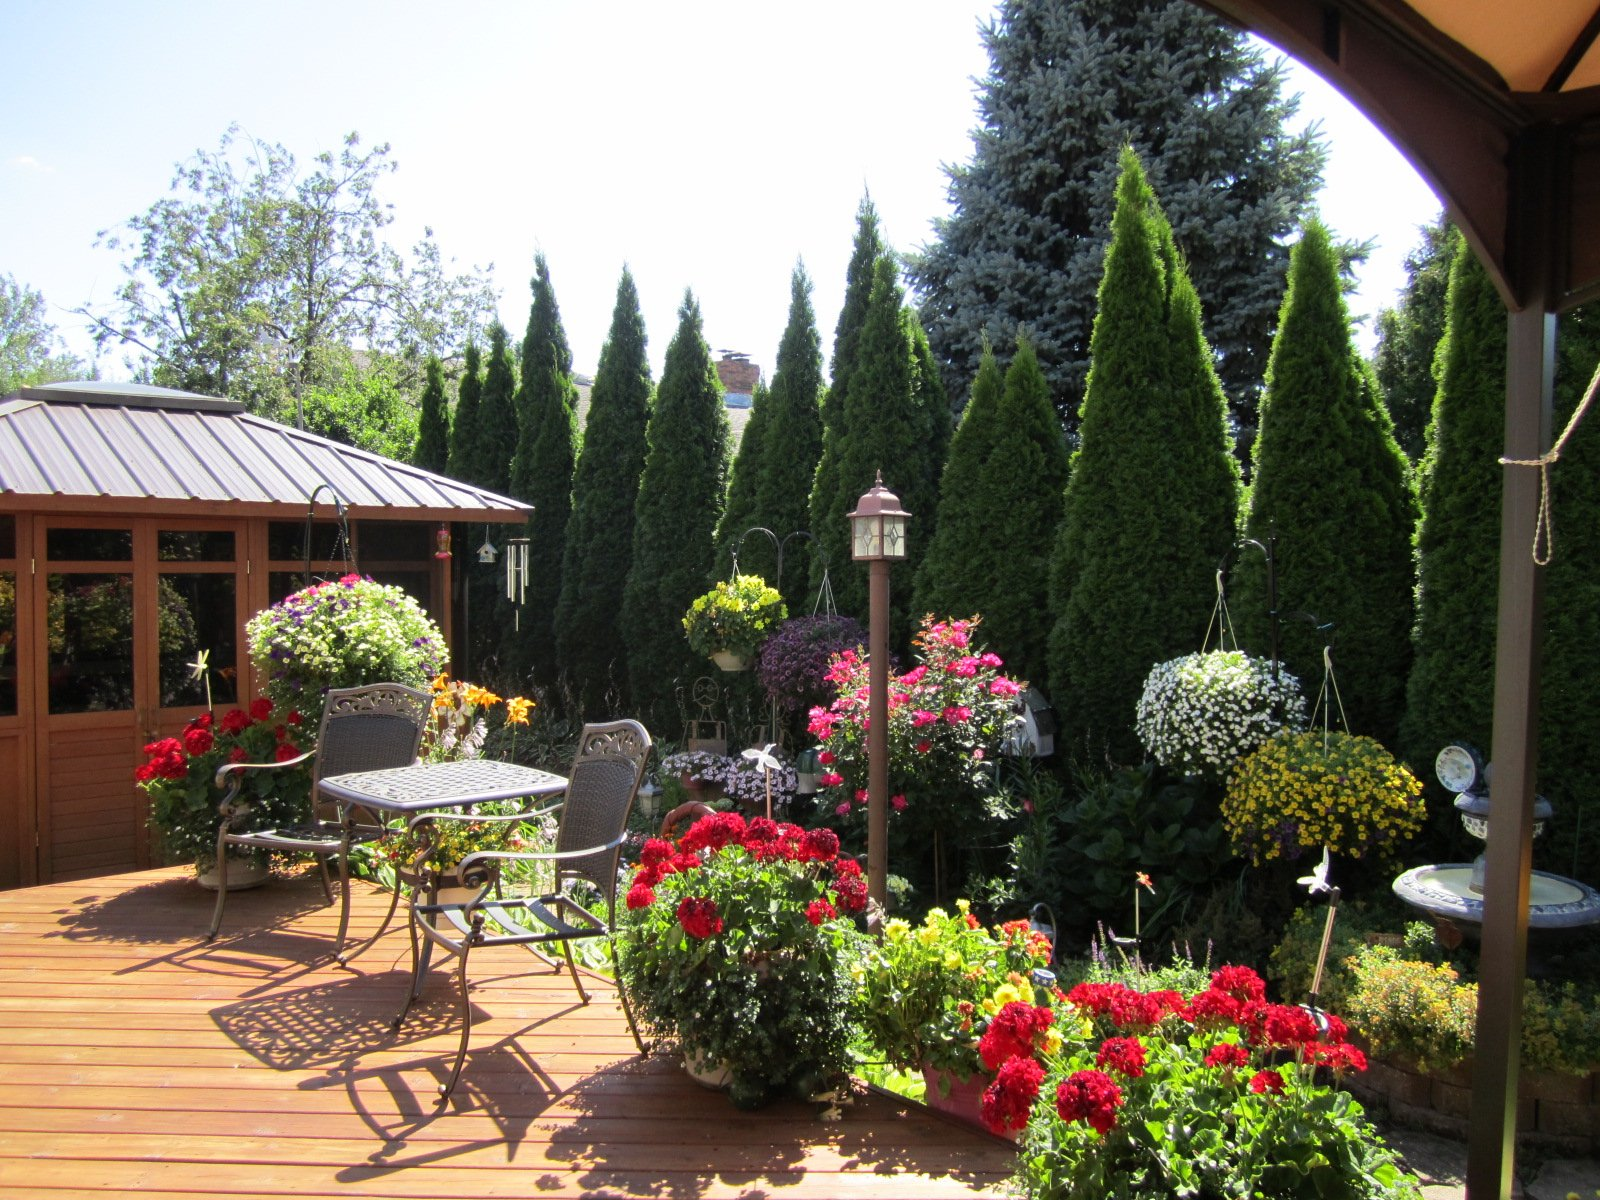 Anns Landscaping image 7